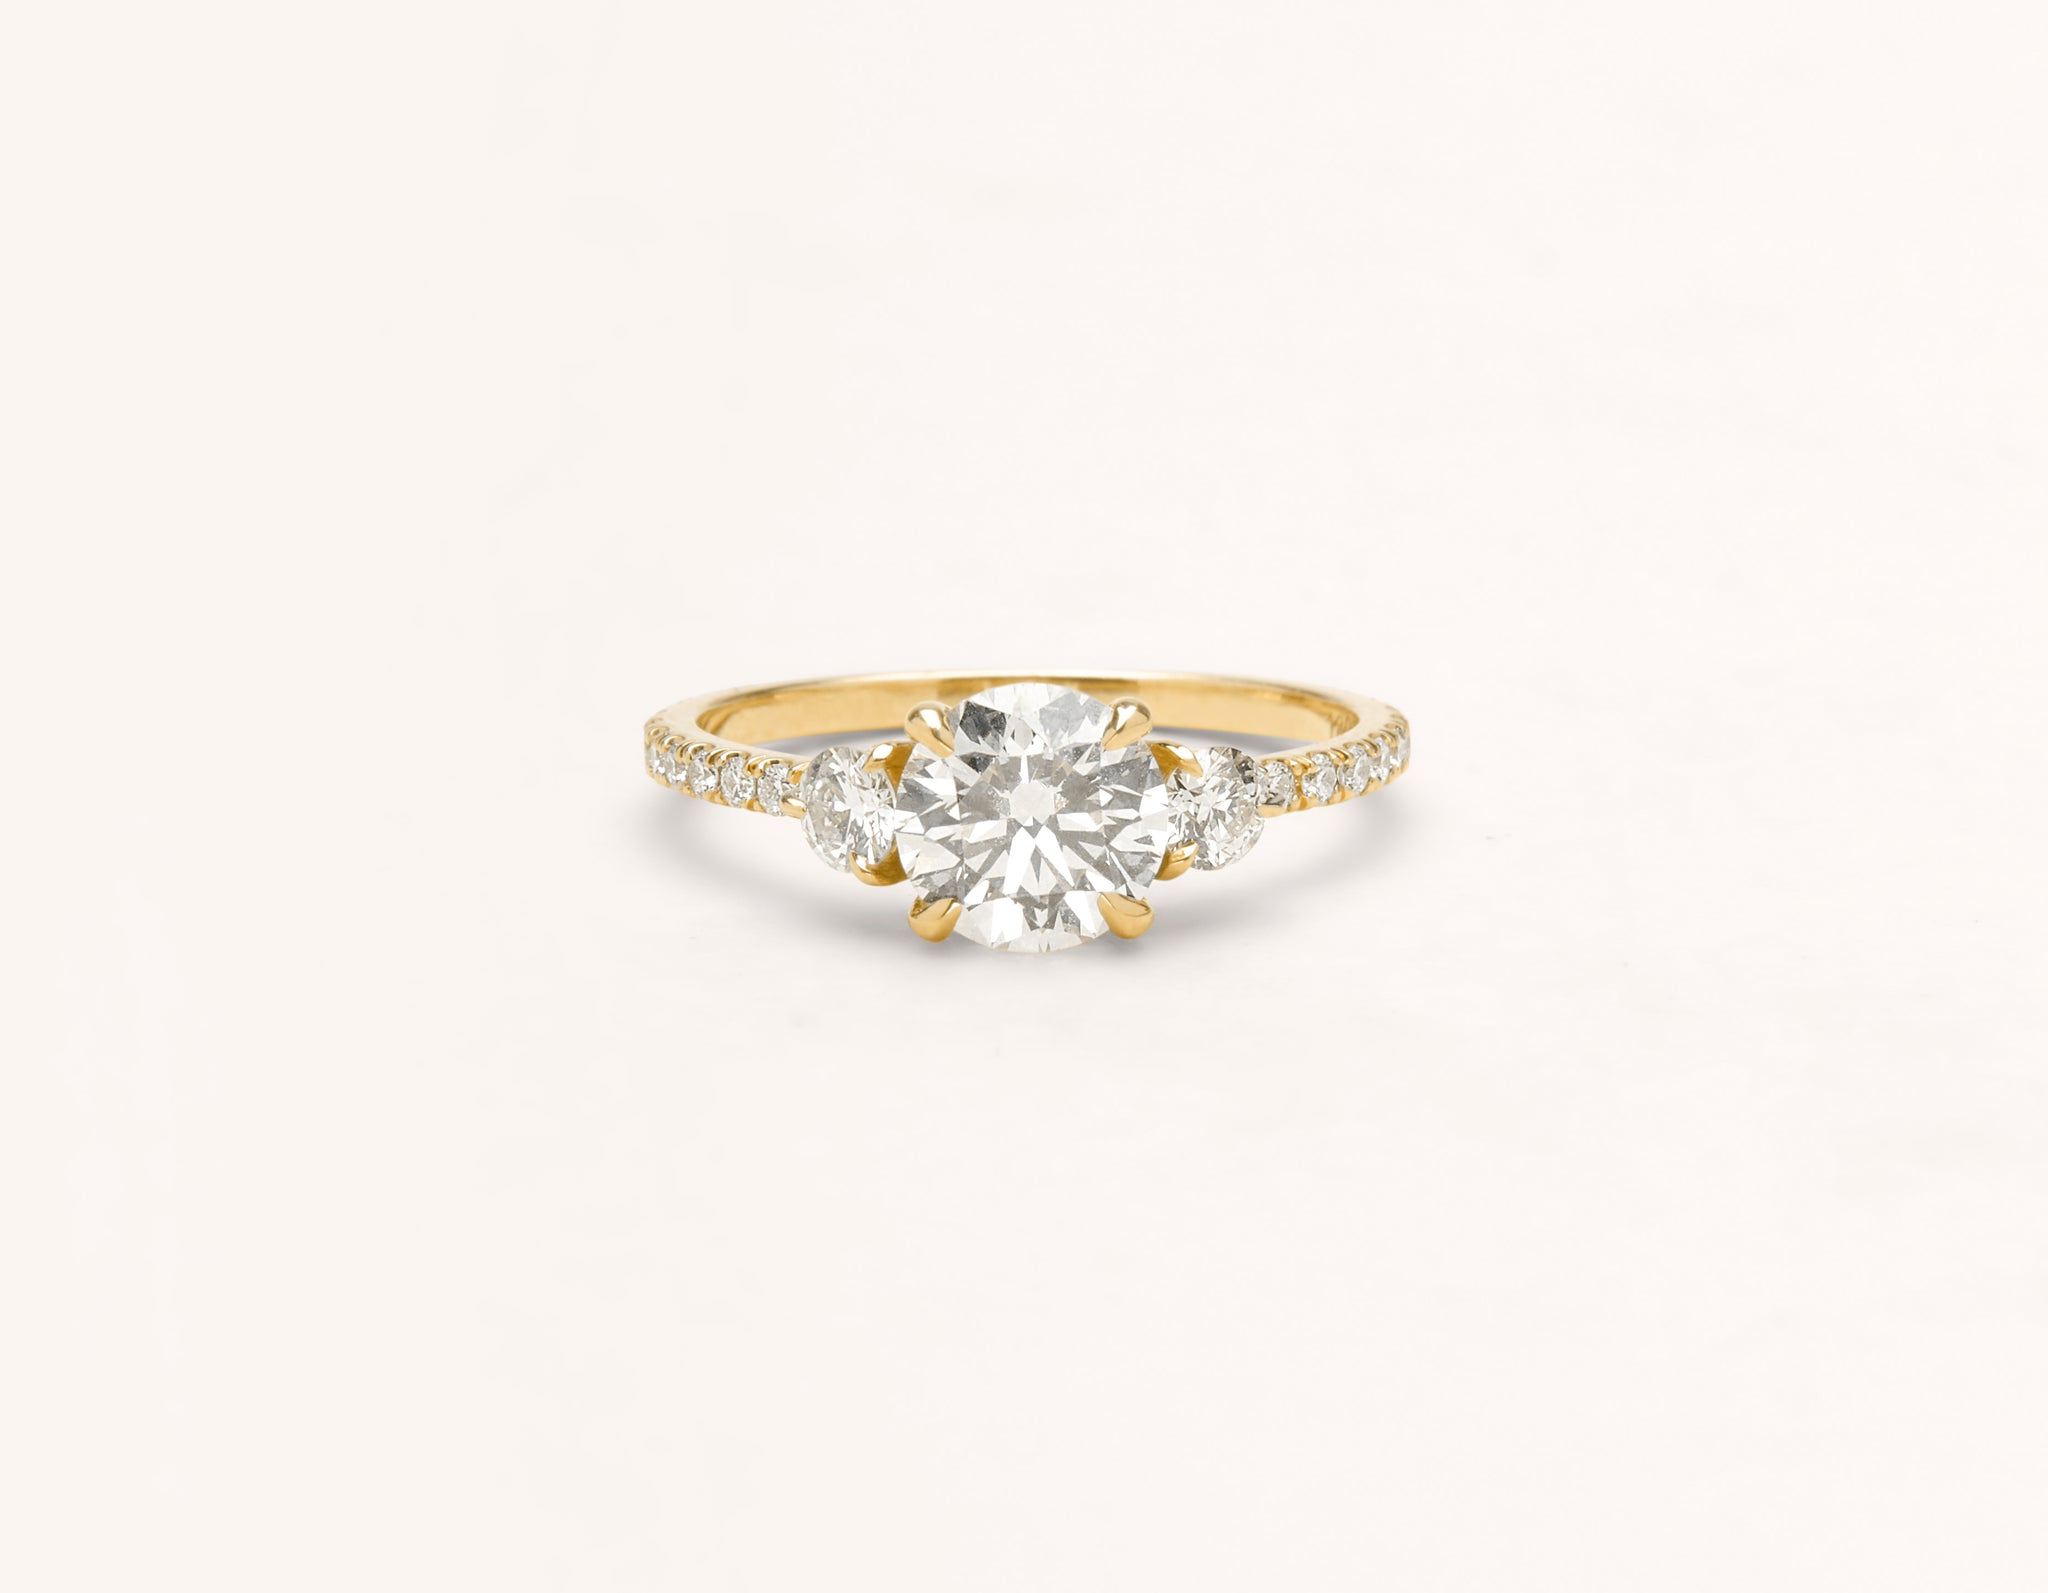 Minimalist 18k solid yellow gold The Three Stone pave engagement ring 1 ct round diamond Vrai and Oro